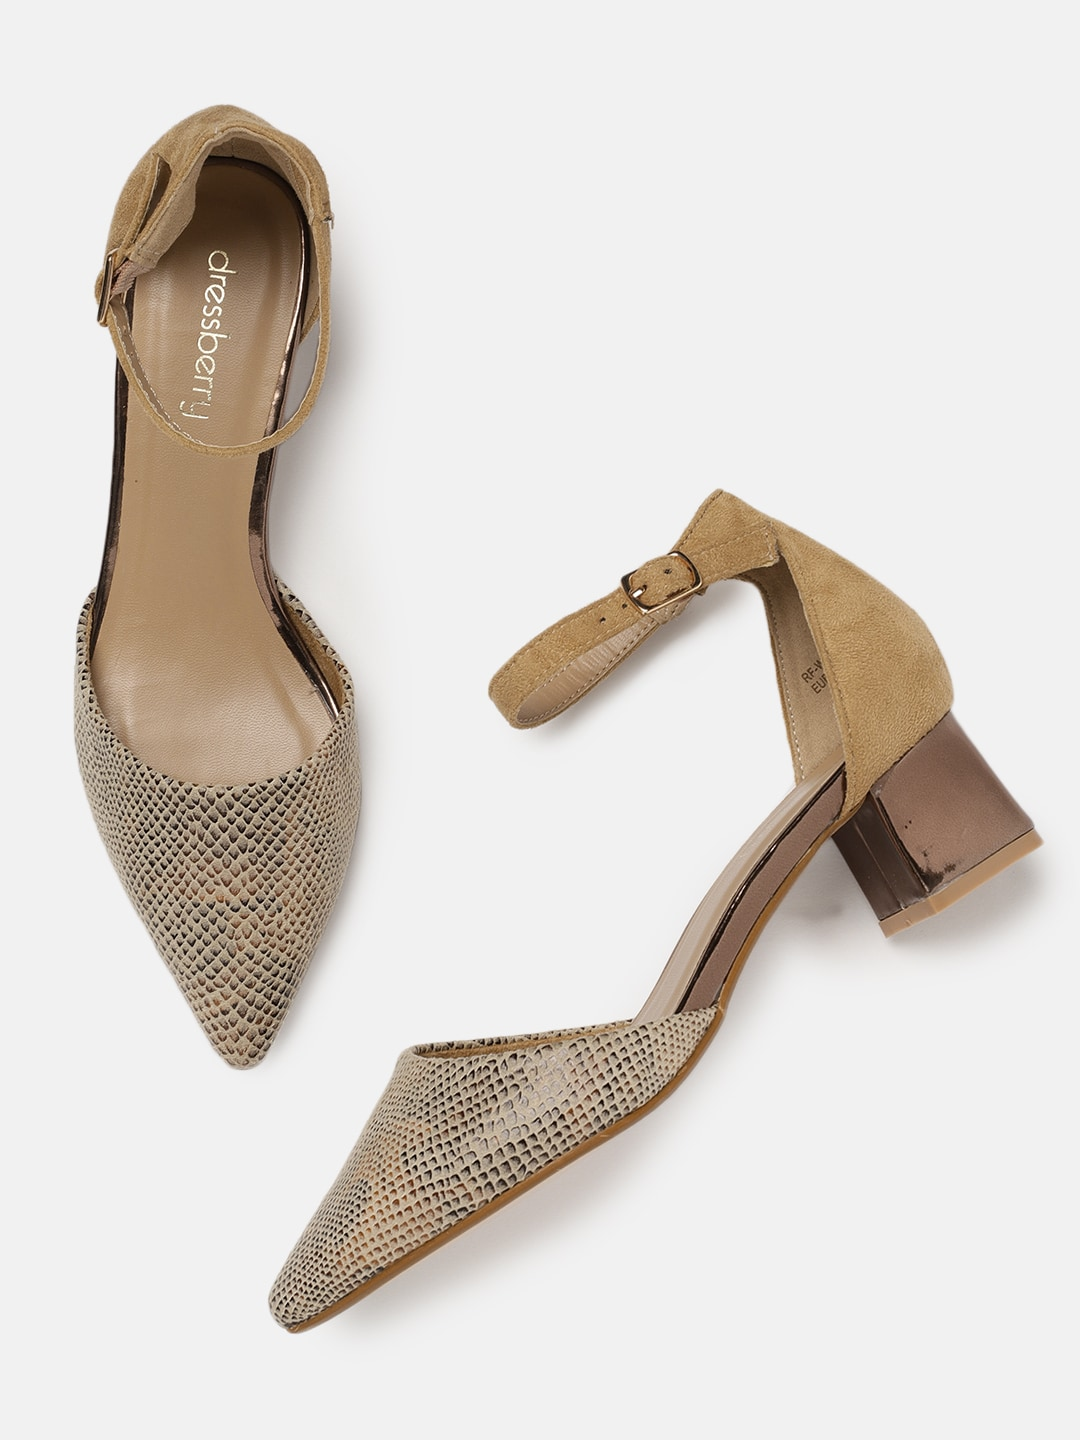 fc171ad7f2a Dressberry Pumps Heels - Buy Dressberry Pumps Heels online in India